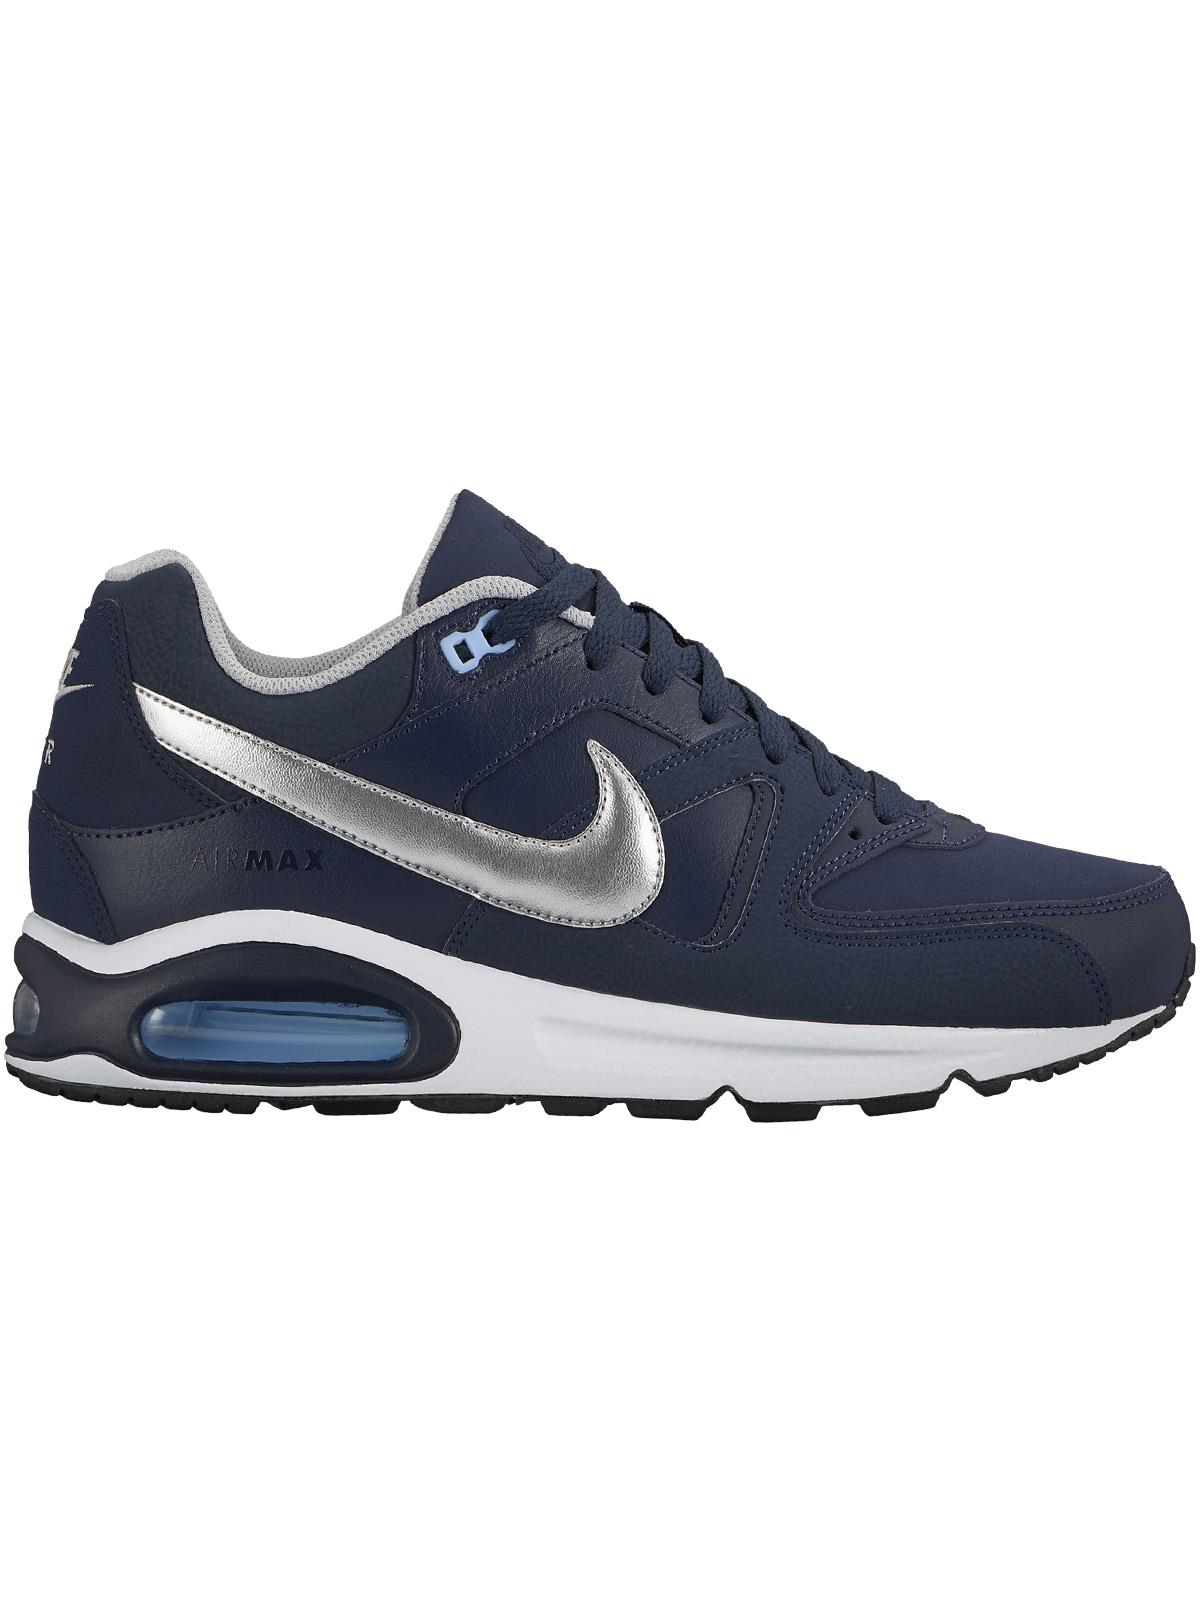 Nike Air Max Command Leather Blu/Silver 749760 401